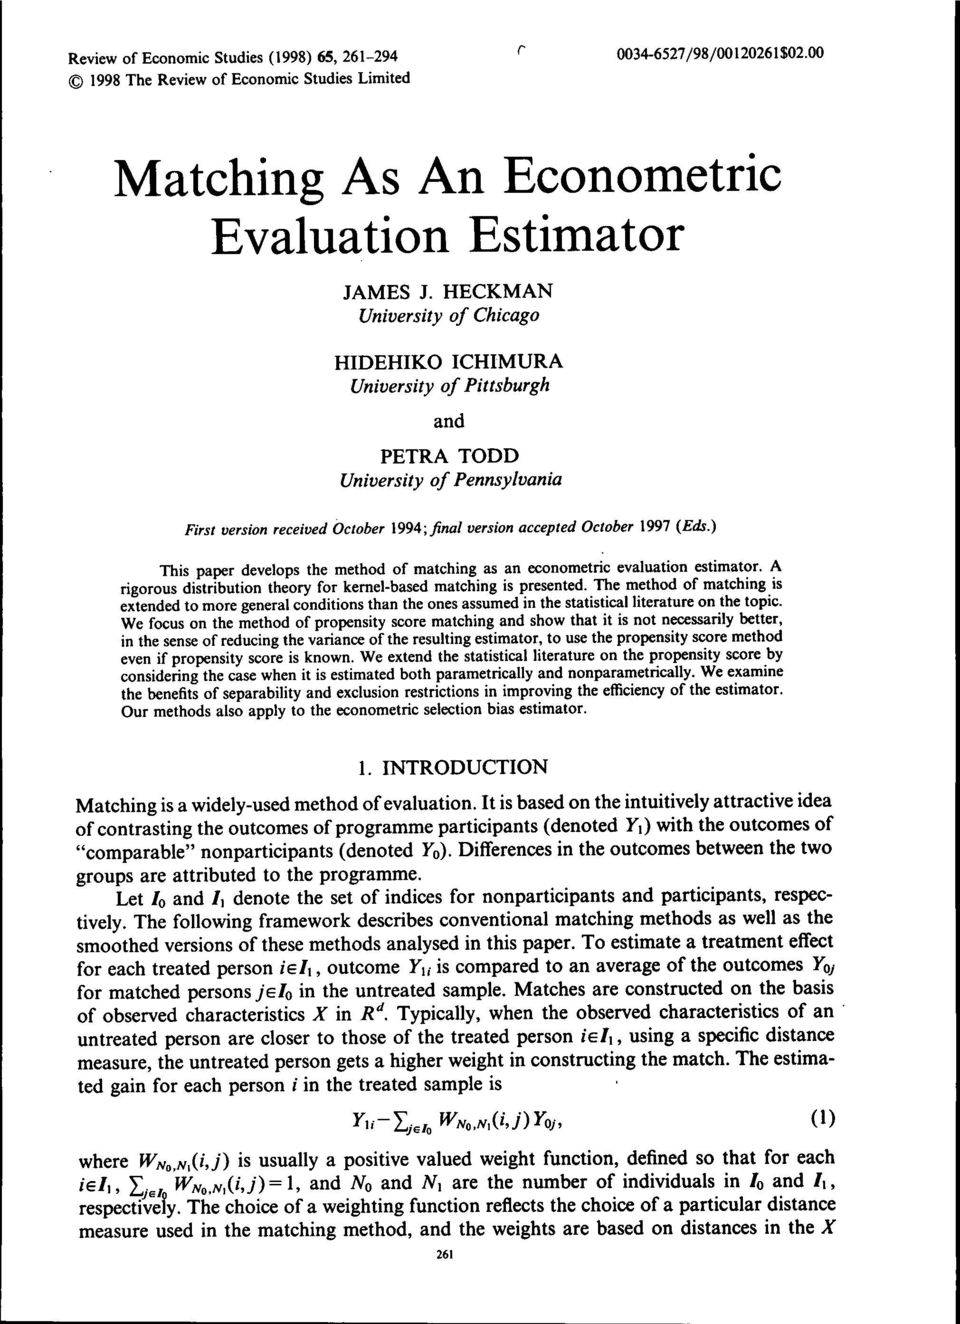 ) This paper develops the method of matching as an econometric evaluation estimator. A rigorous distribution theory for kernel-based matching is presented.